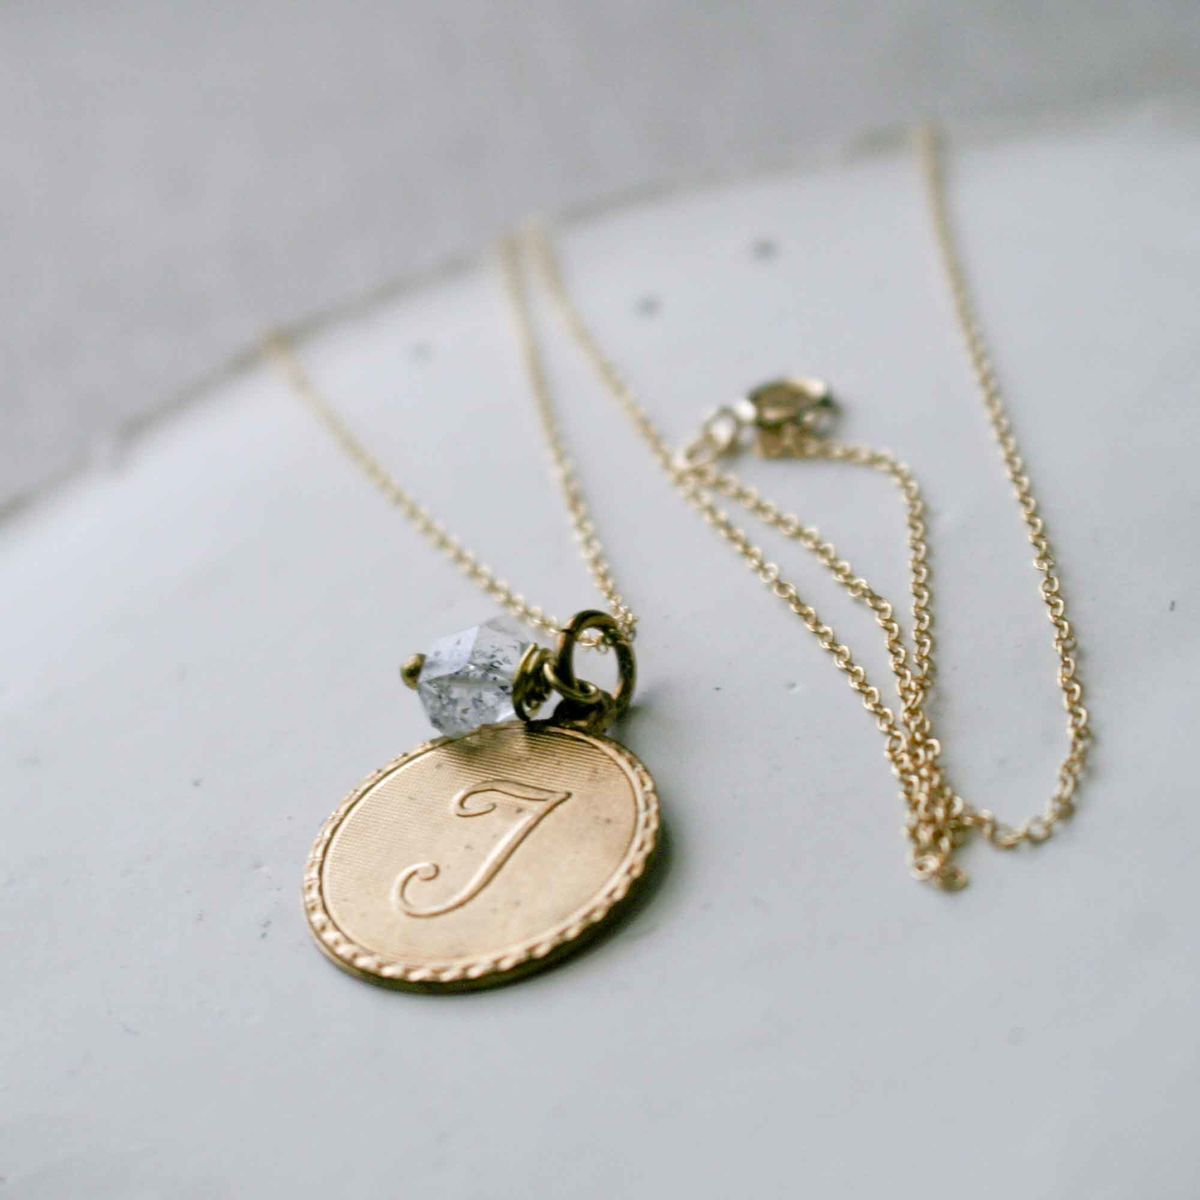 Uppercase Cursive Initial Monogram Letter Round Disc Charm Necklace For Current Letter O Alphabet Locket Element Necklaces (Gallery 13 of 26)